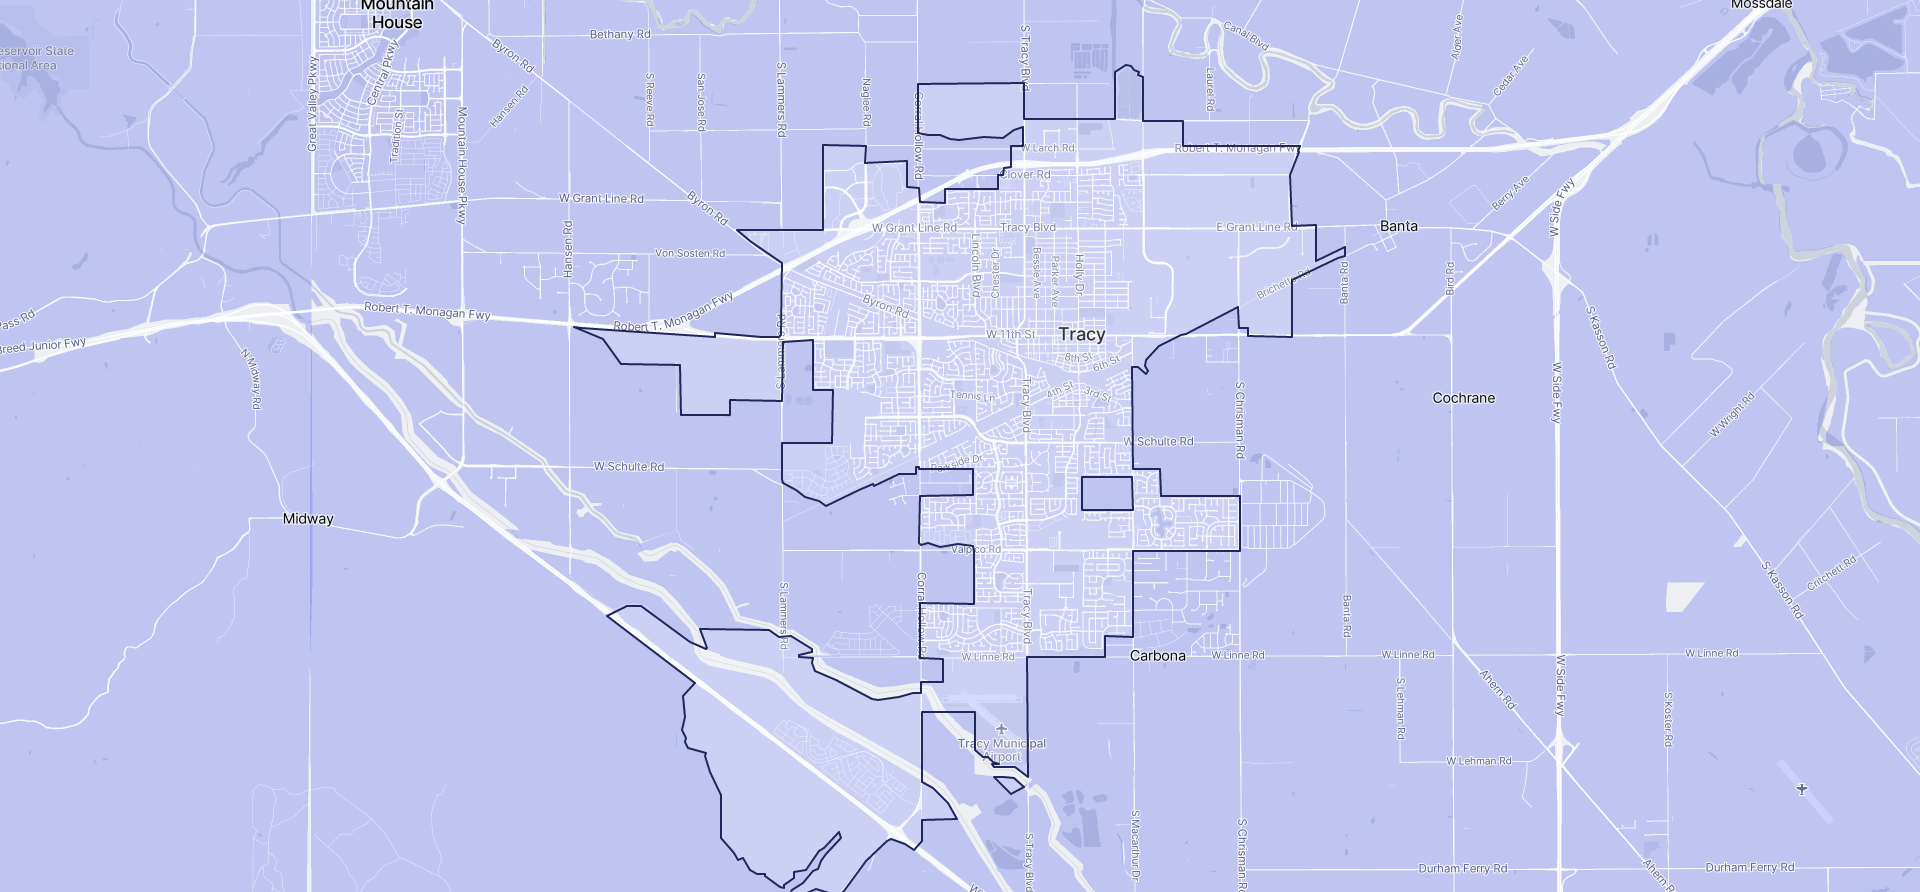 Image of Tracy boundaries on a map.